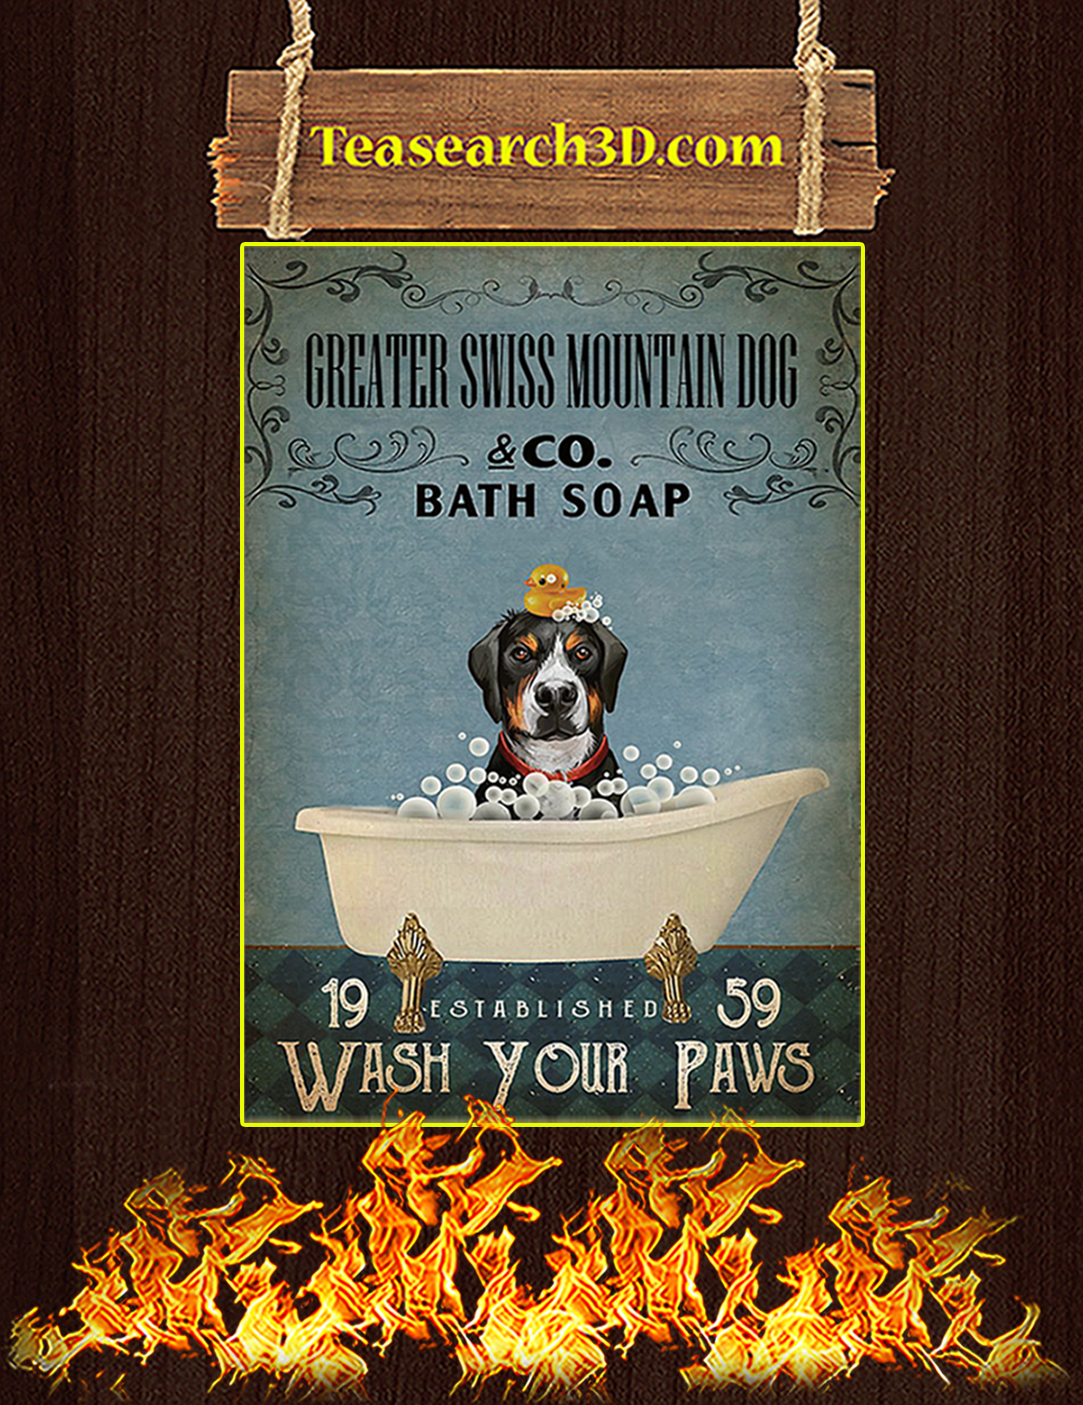 Bath soap company greater swiss mountain dog poster A2